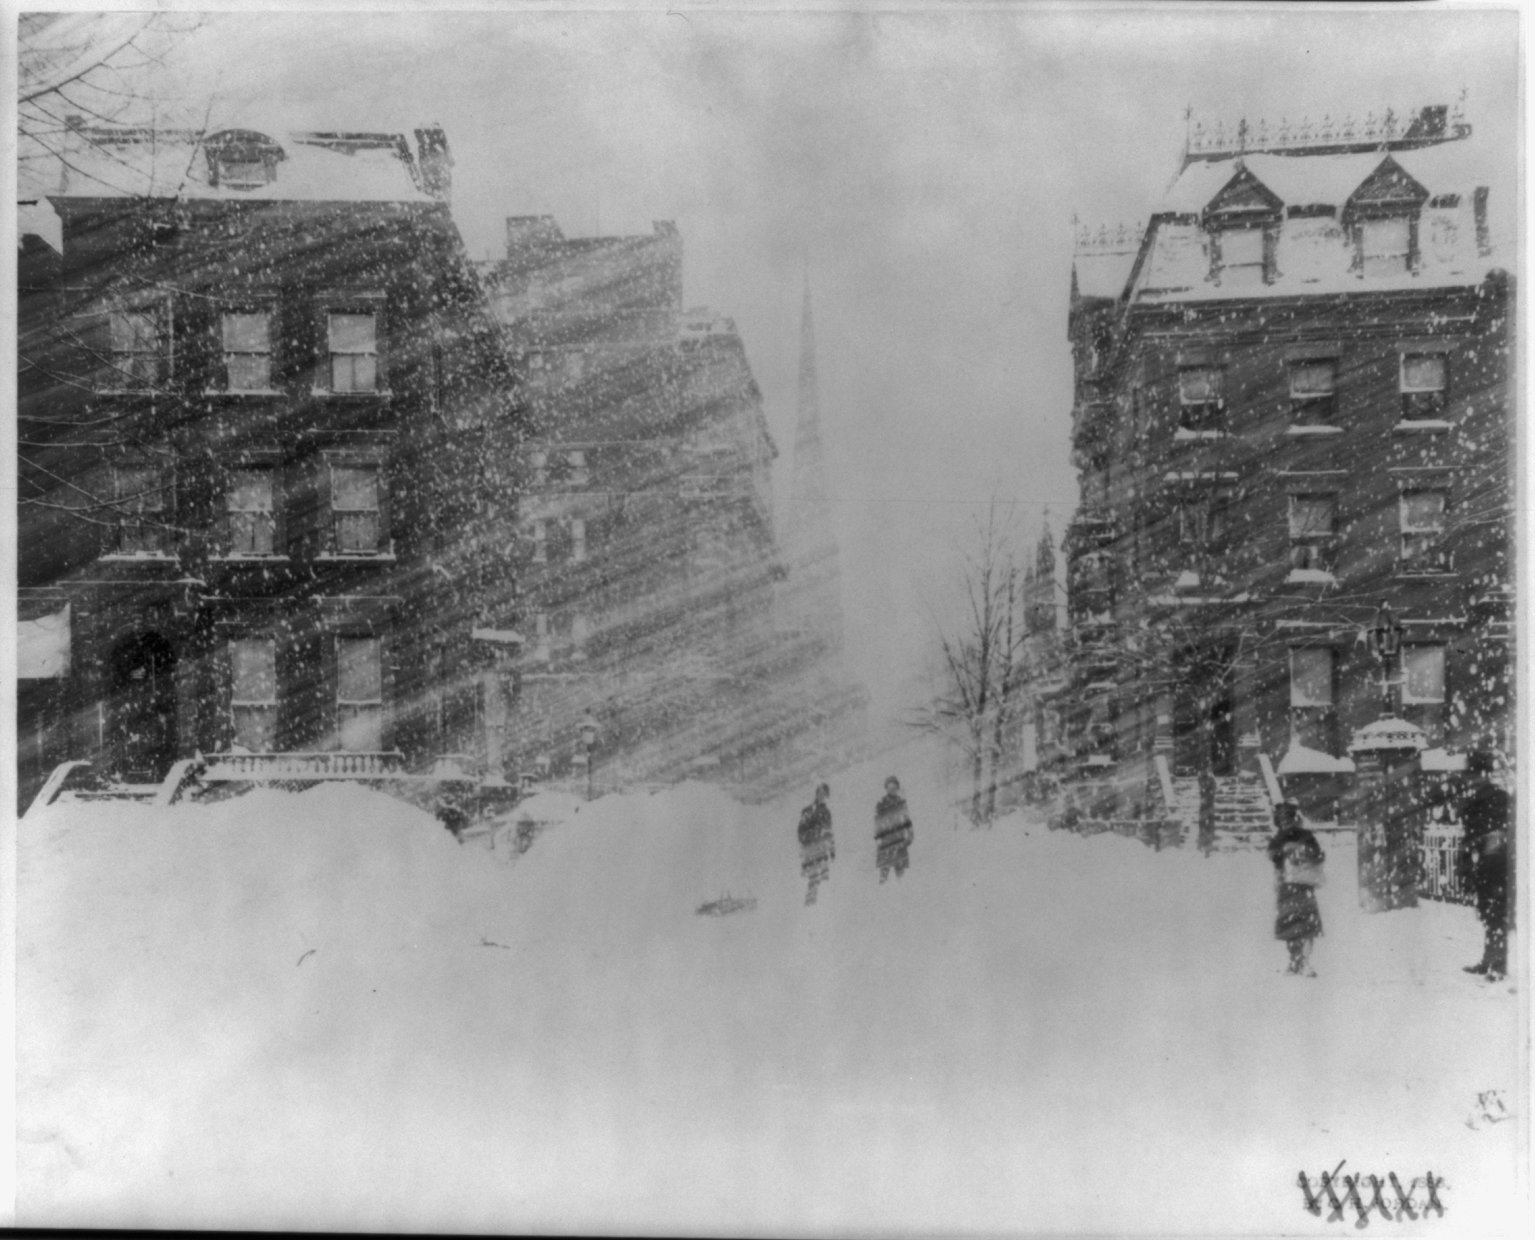 1888: Great Blizzard